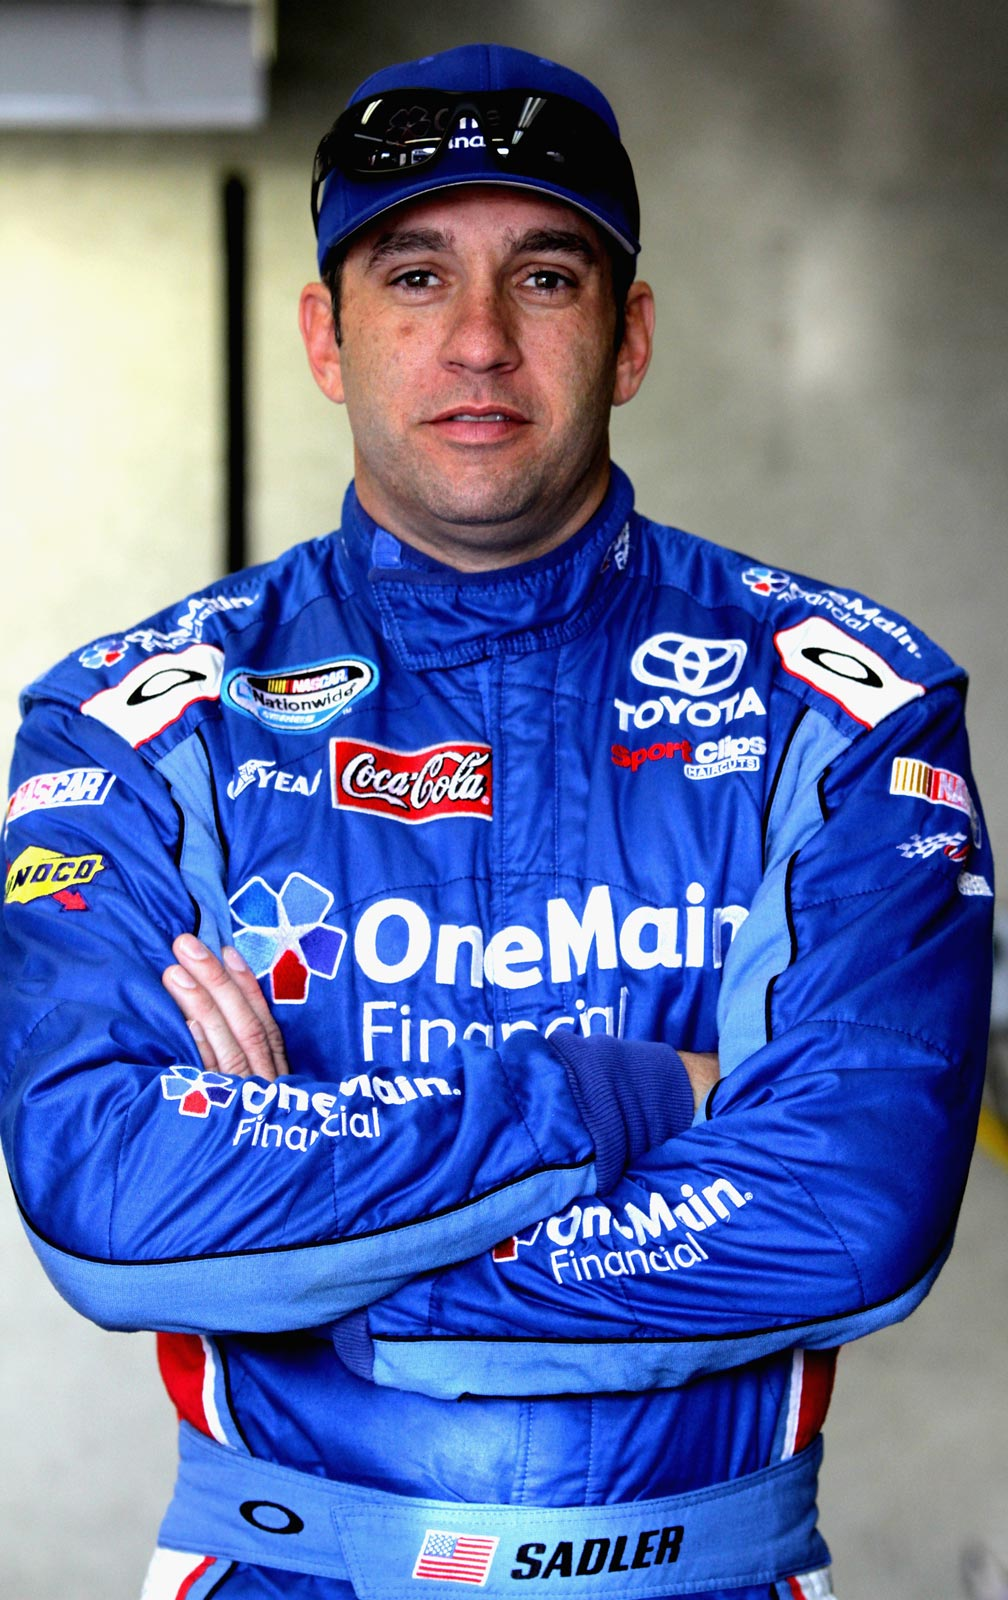 Elliott_Sadler_NASCAR_Indy_July2013